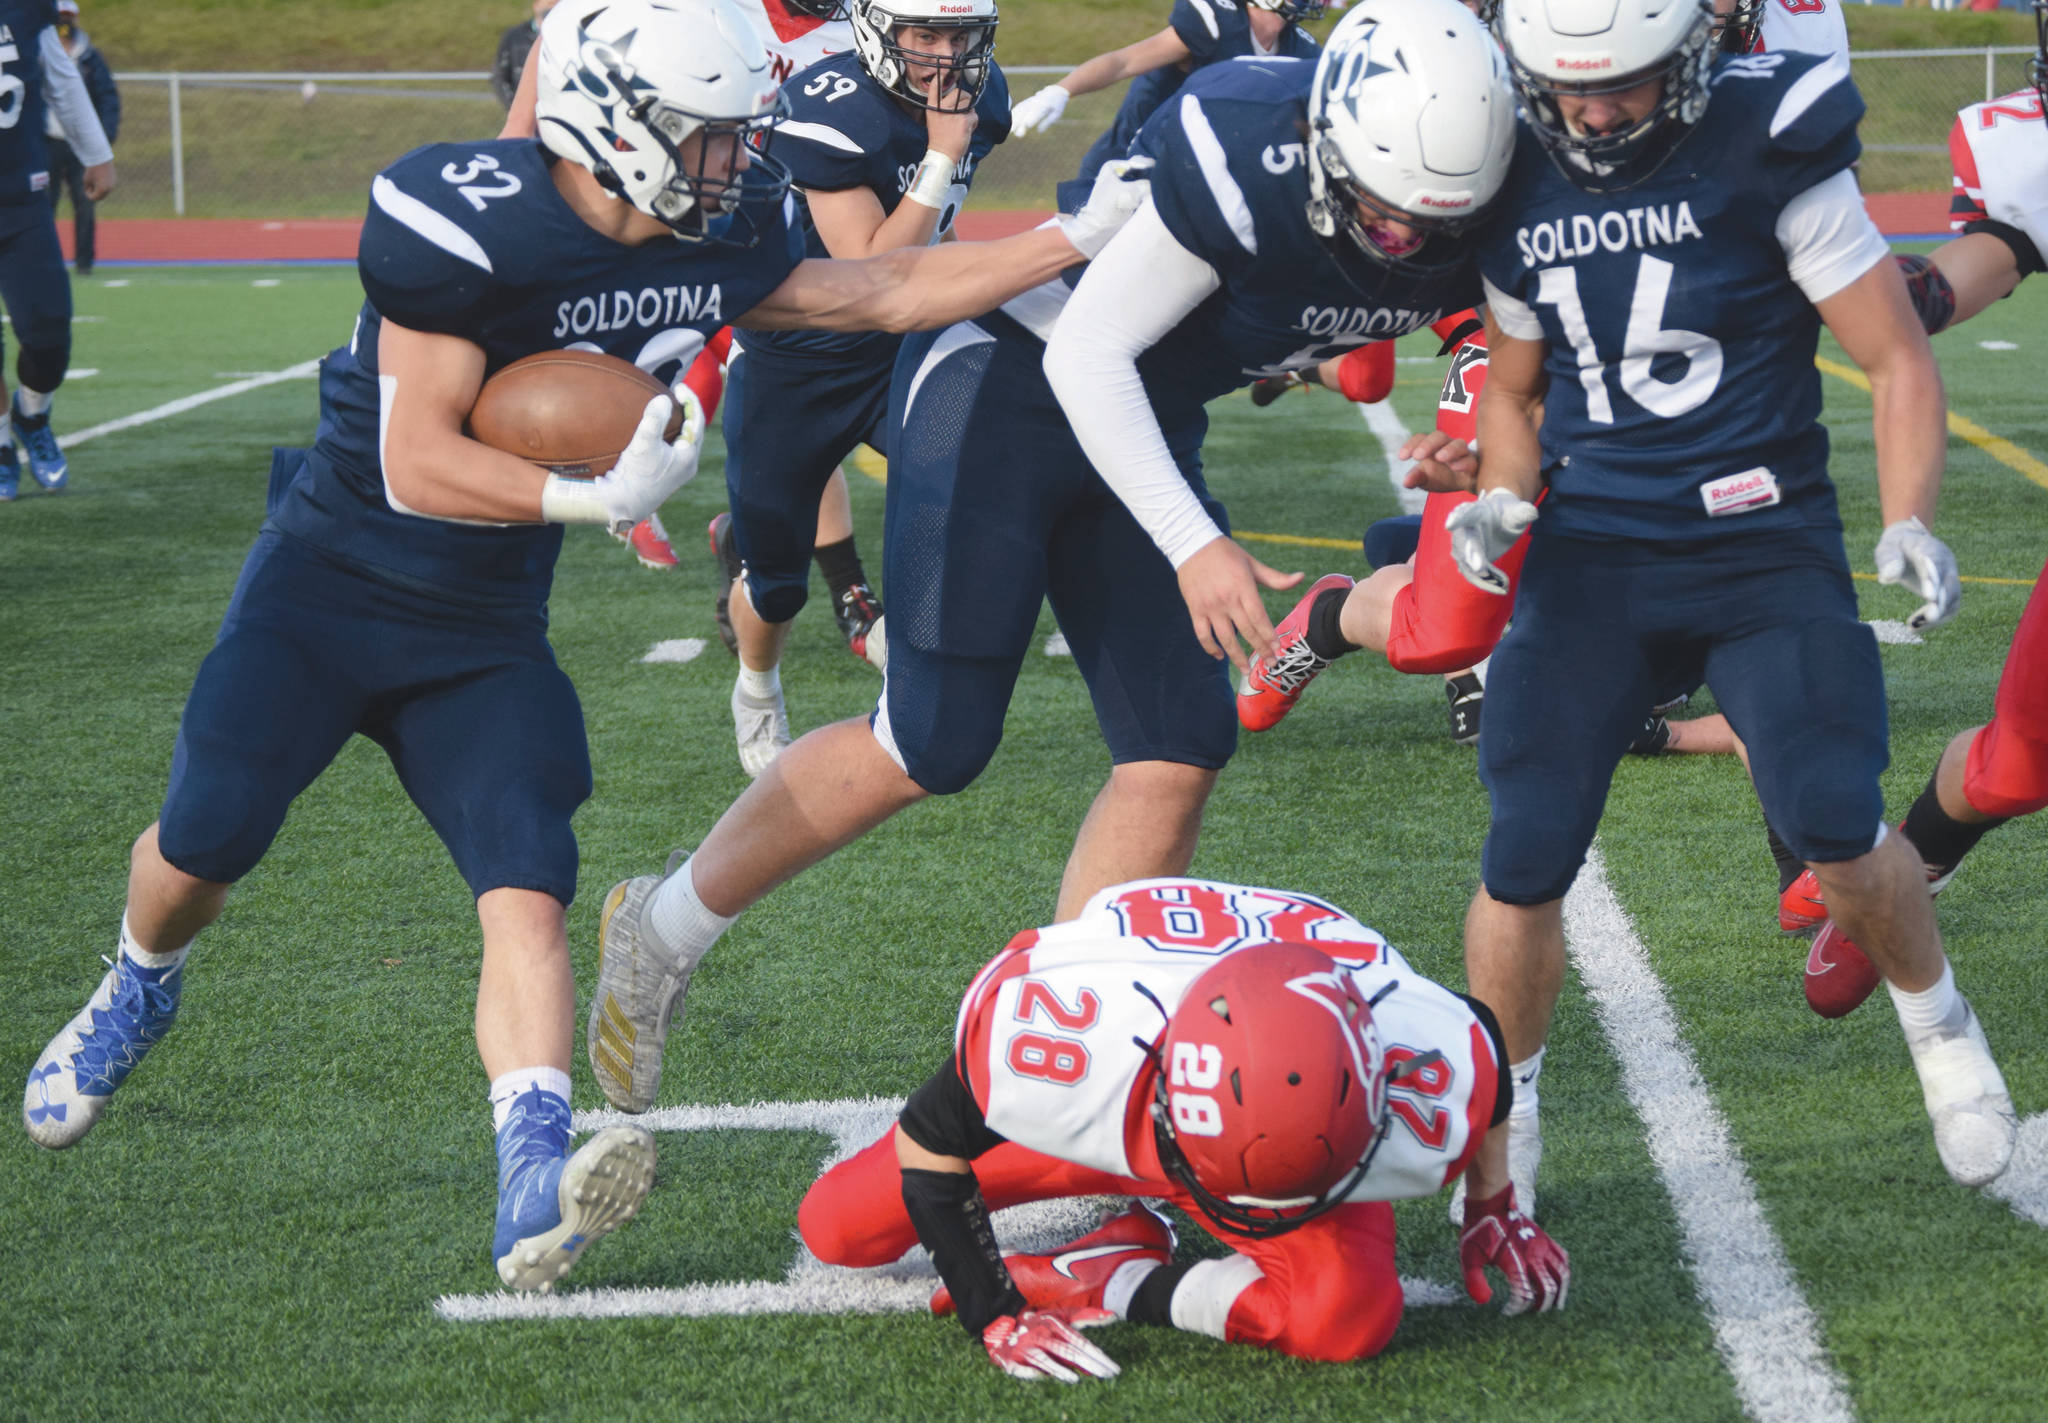 (Photo by Jeff Helminiak/Peninsula Clarion)Soldotna's Dennis Taylor follows the blocking of Brock Wilson and Austin Escott past Kenai Central's James Sparks on Friday, at Justin Maile Field in Soldotna.